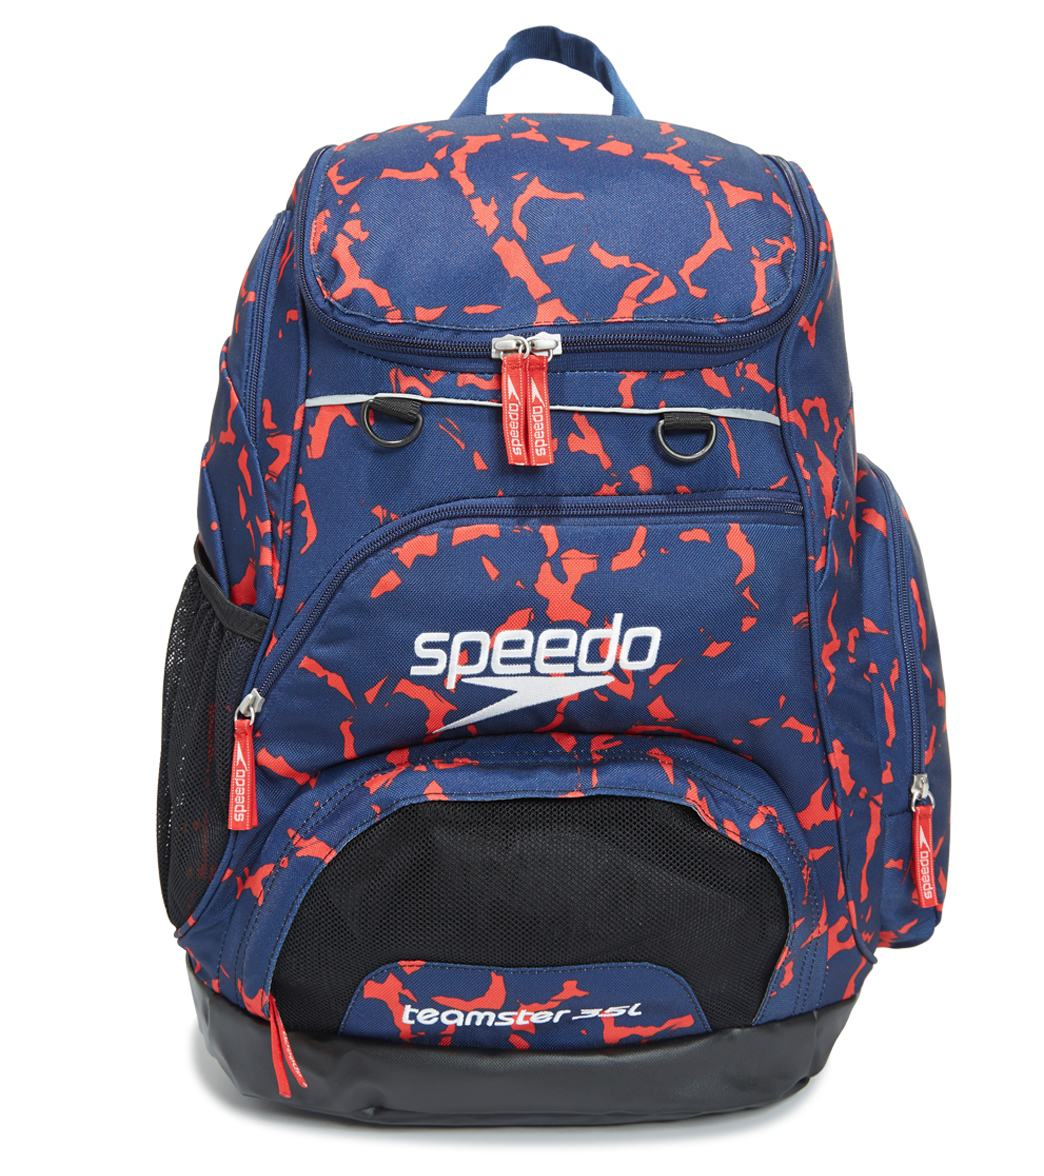 Speedo Printed Teamster 35L Open Water Swimming Backpack